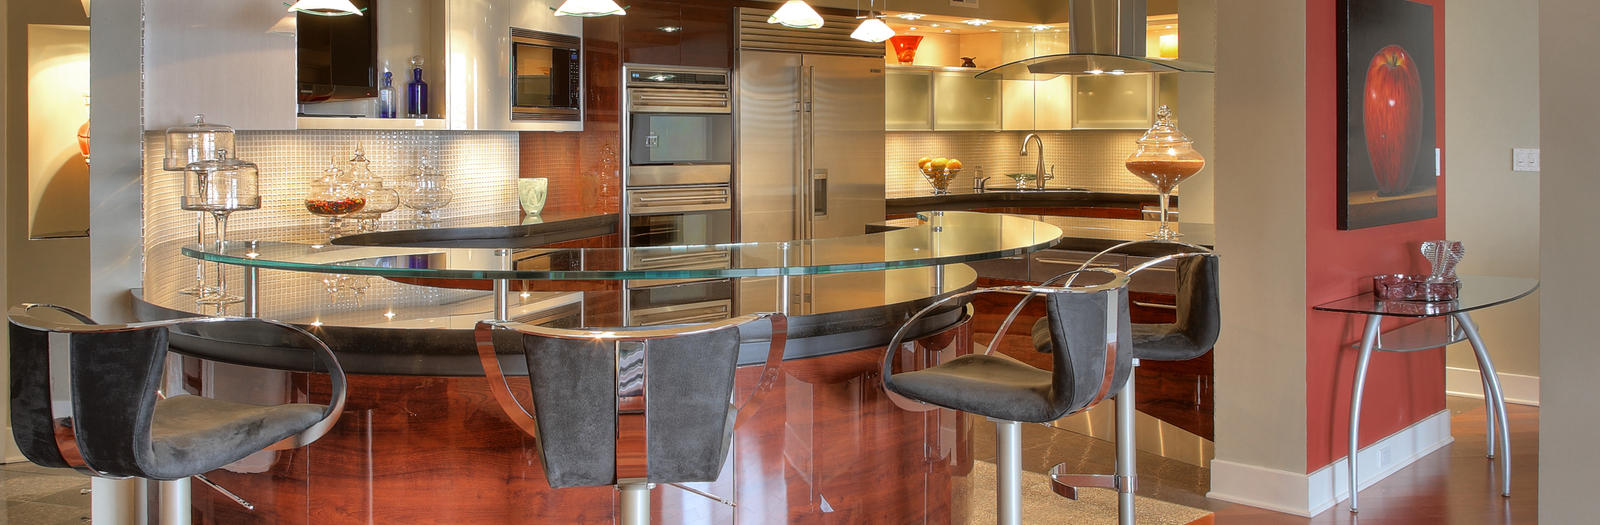 Contemporary Kitchen with stainless steel appliances